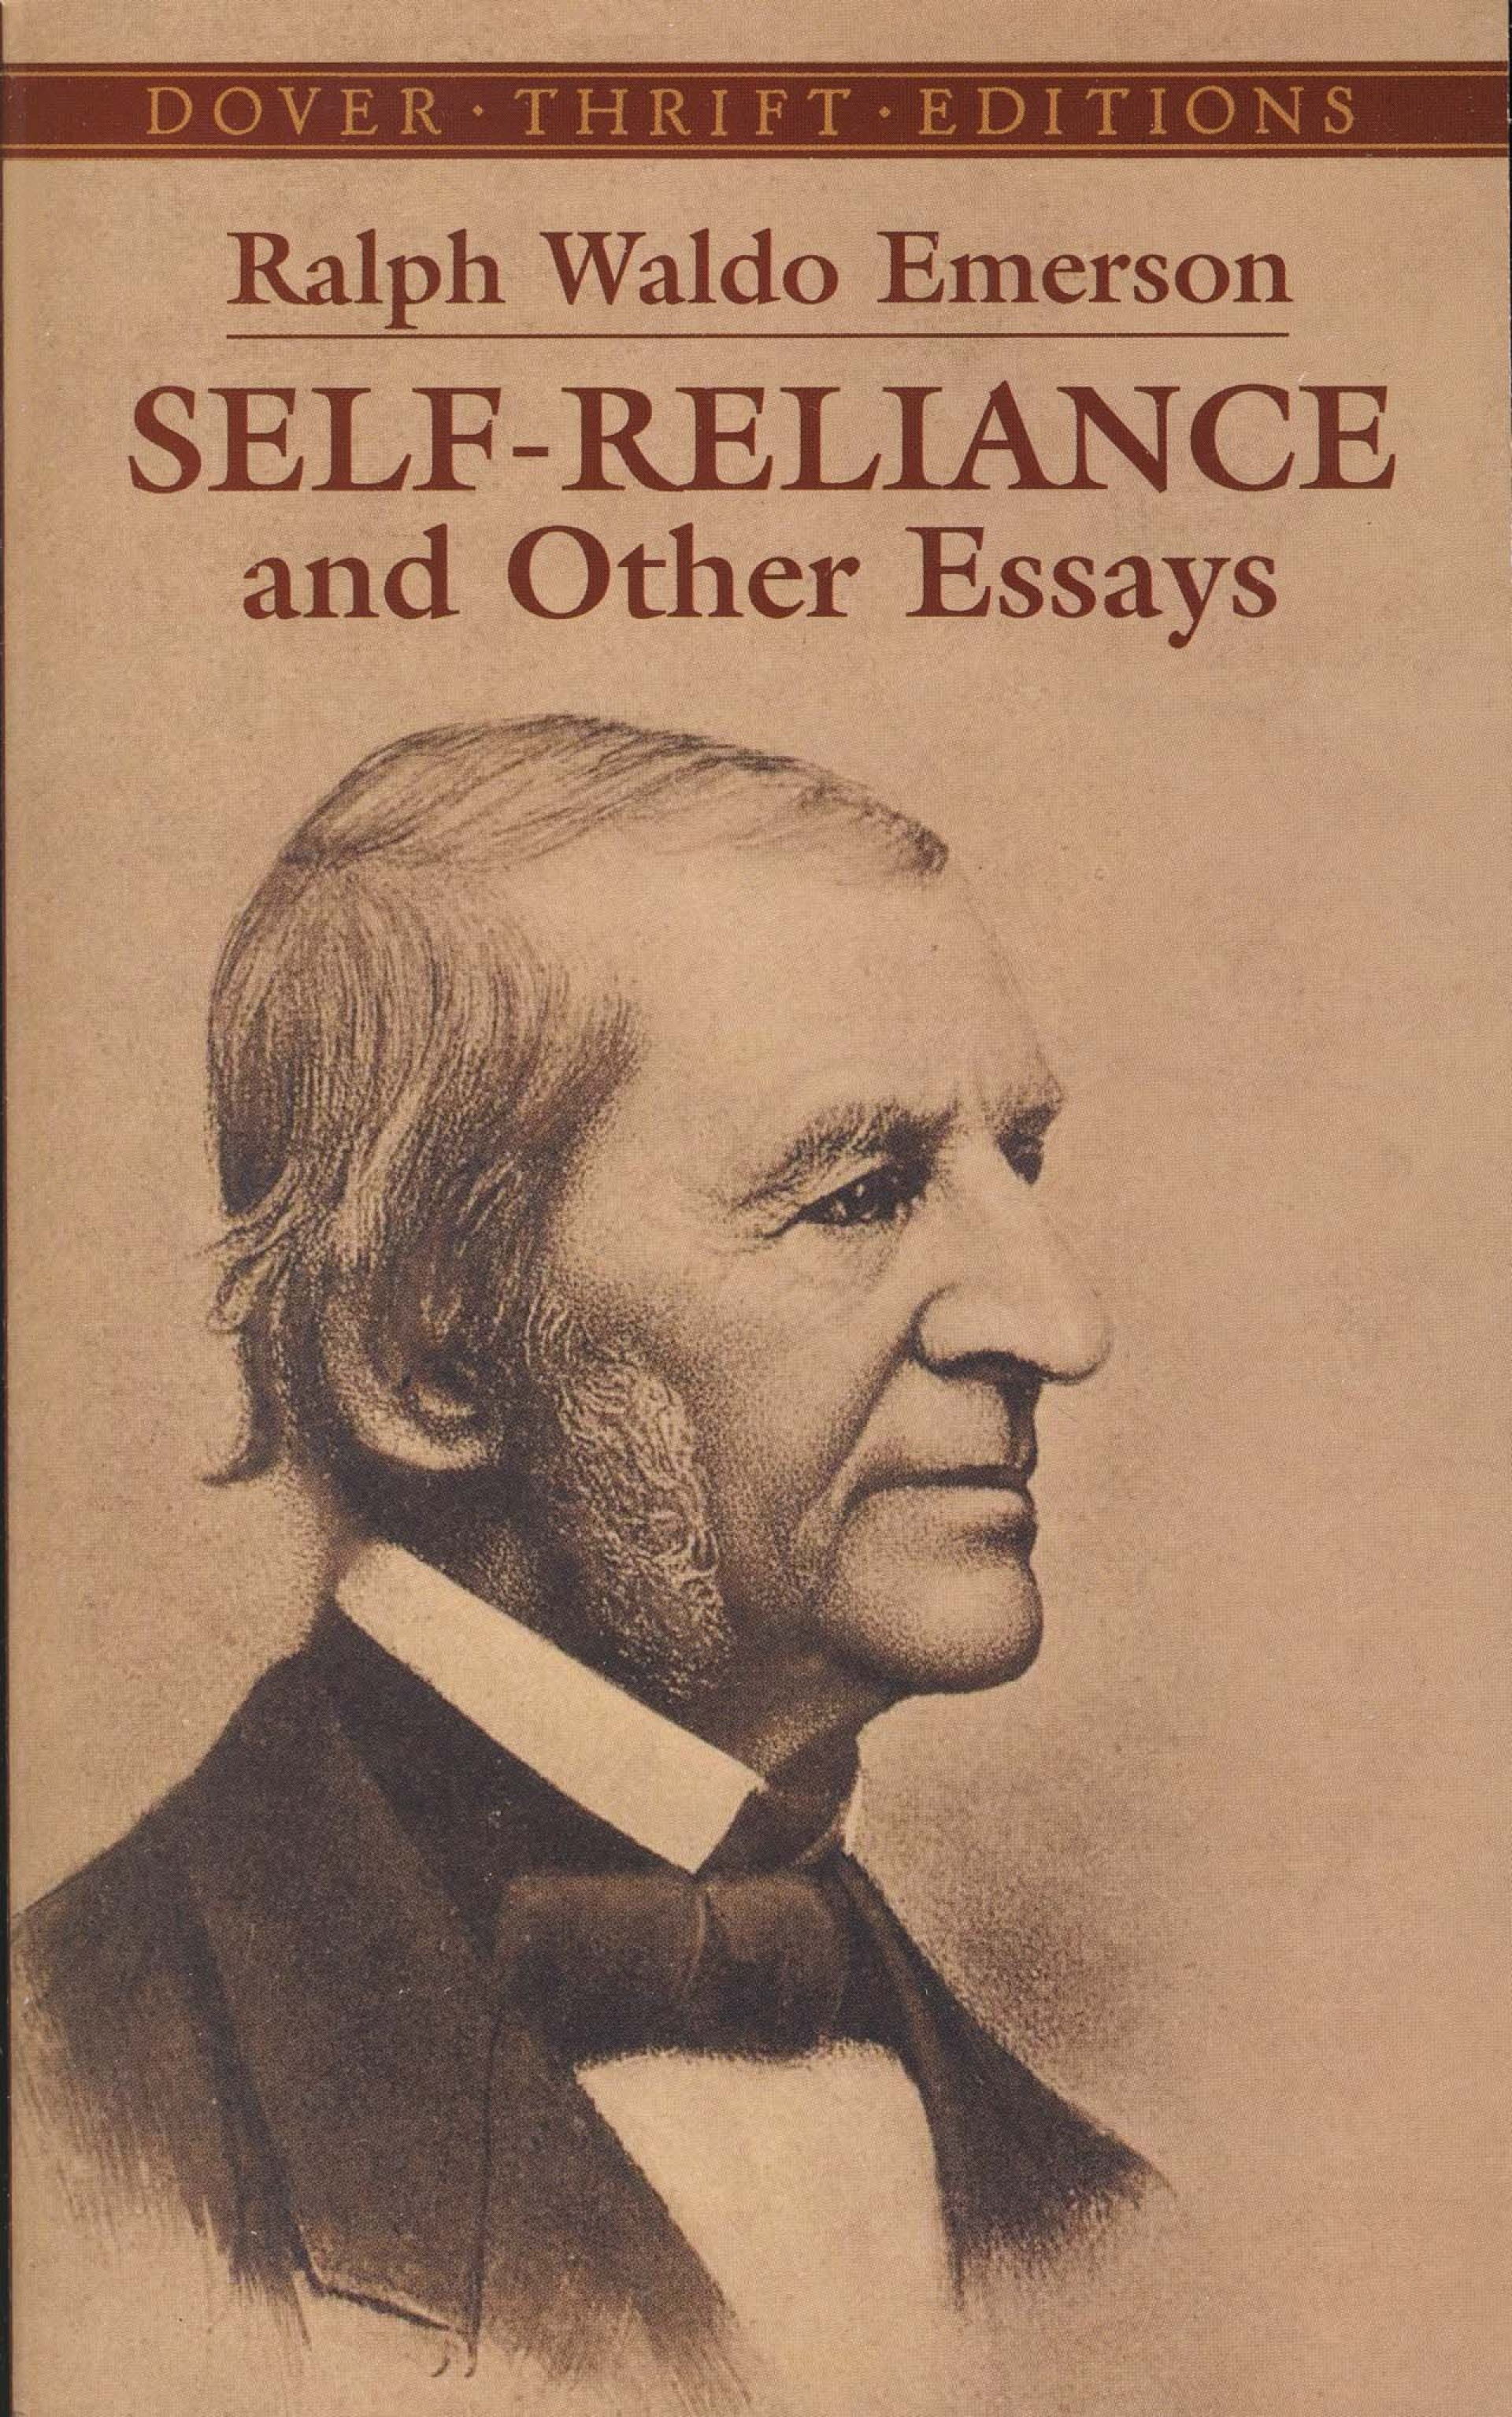 001 Essay Example 91btiwopxal Self Reliance And Other Formidable Essays Ekşi Self-reliance (dover Thrift Editions) Pdf Epub 1920